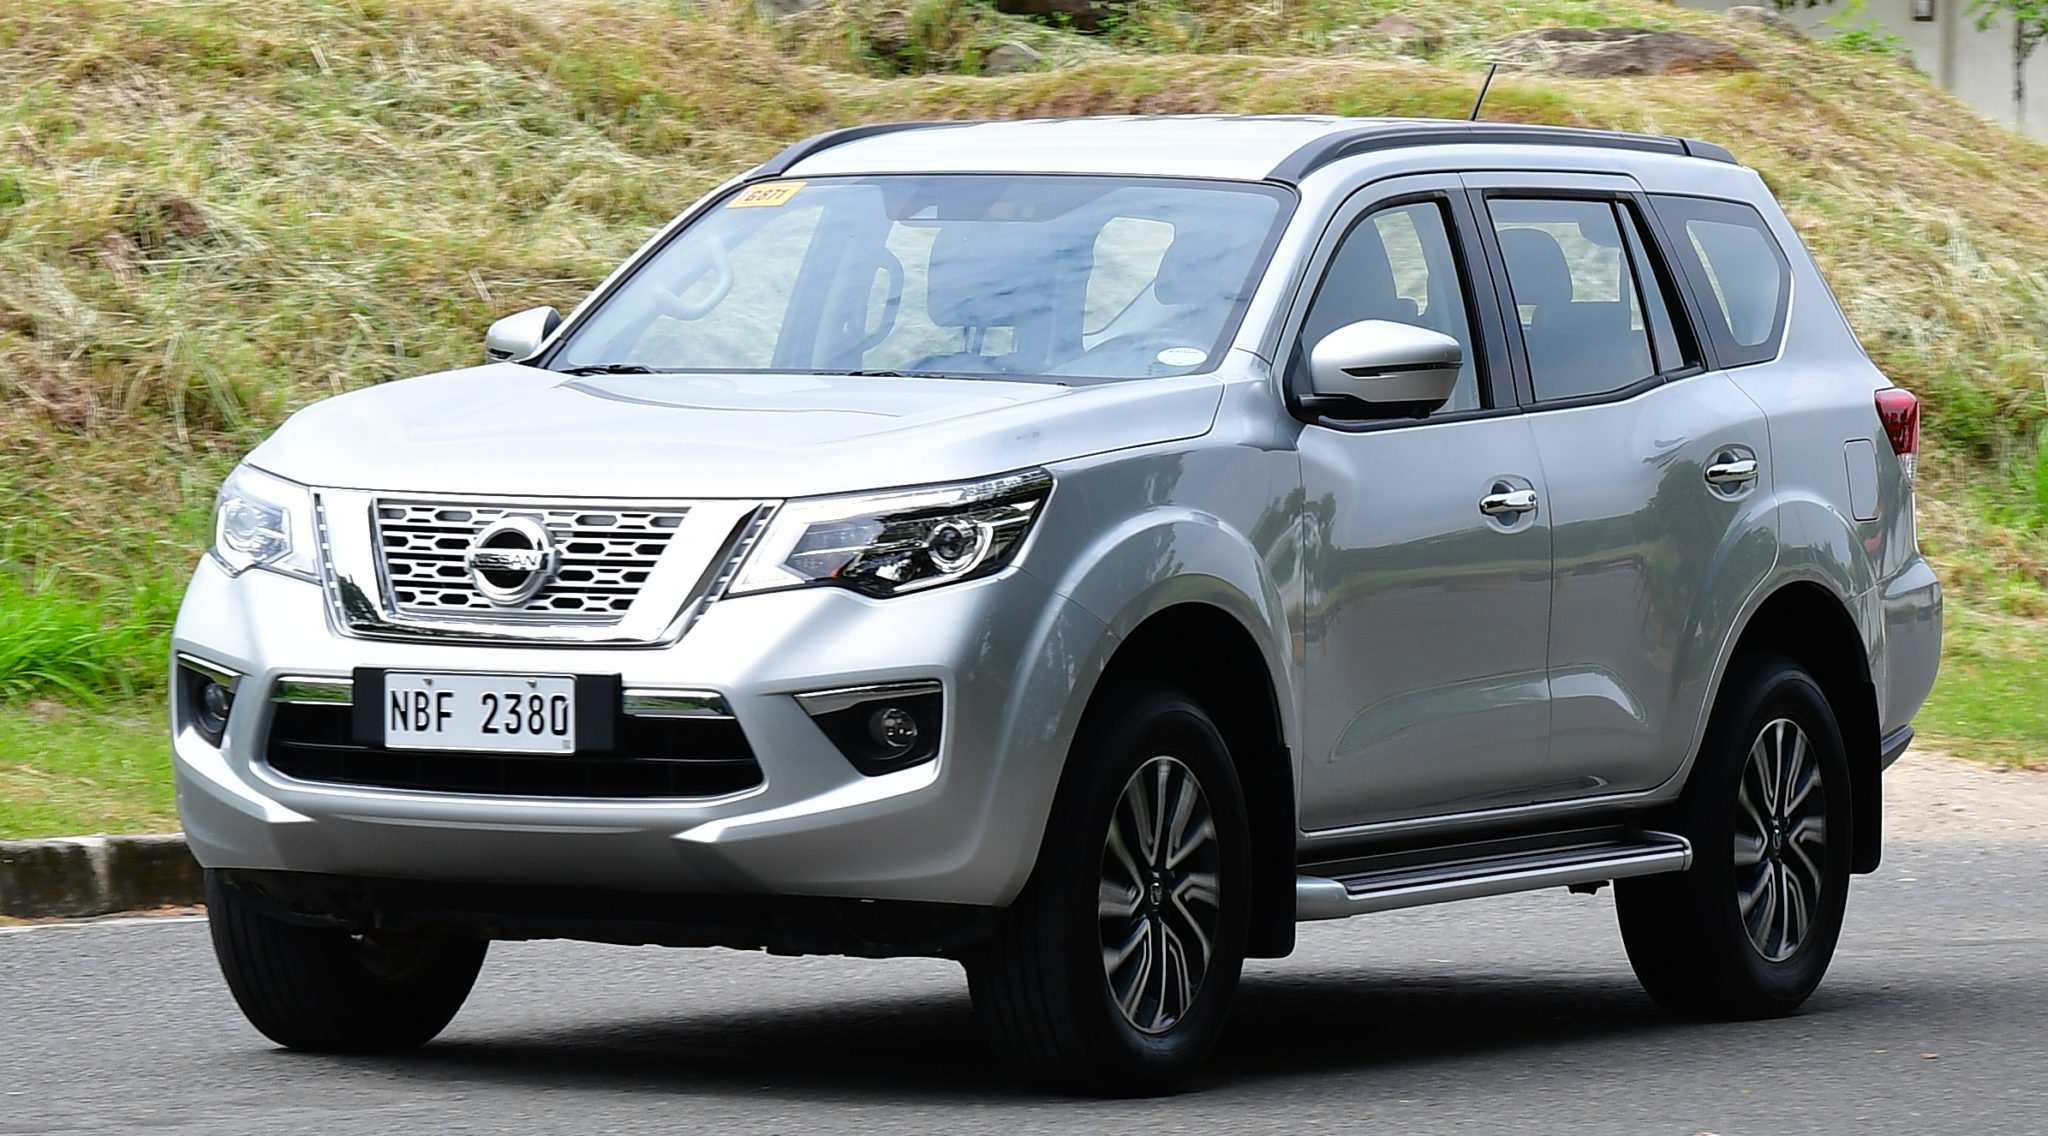 73 Great Nissan Terra 2019 Philippines Research New with Nissan Terra 2019 Philippines